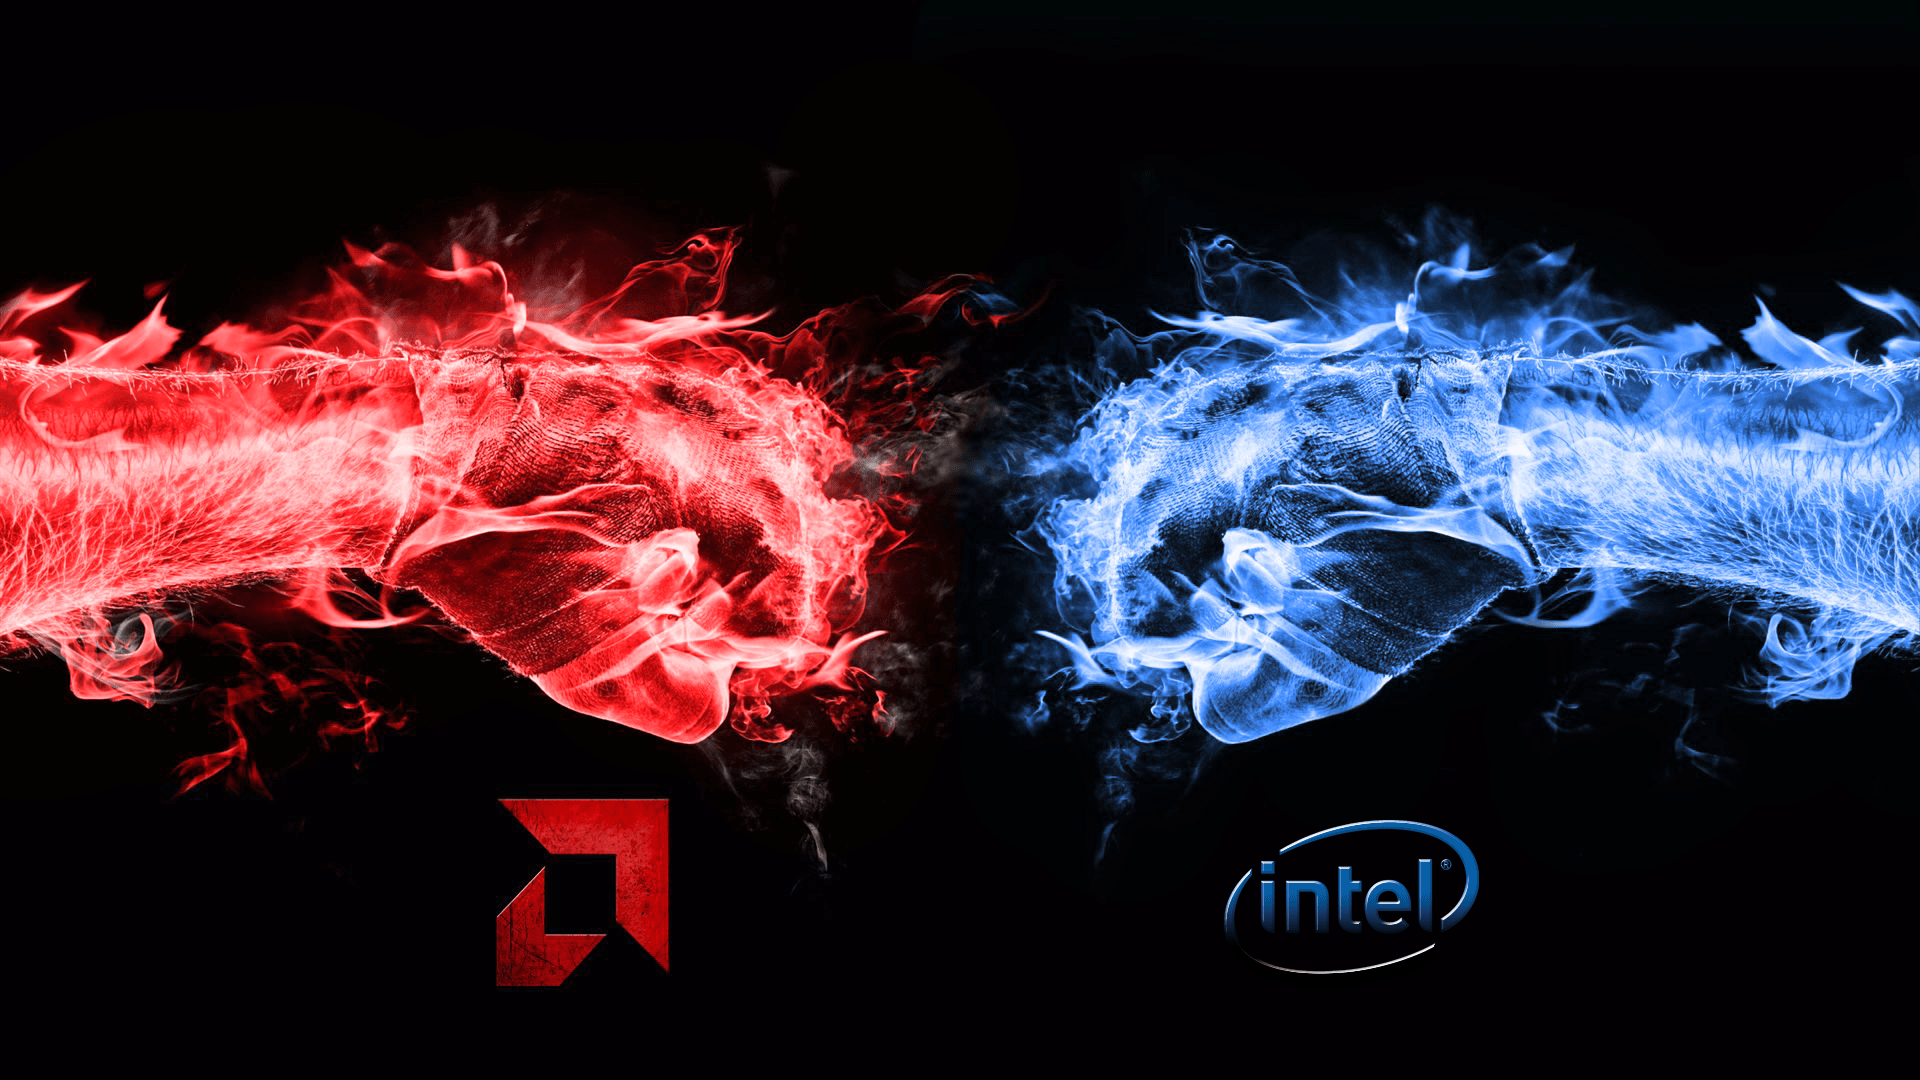 Intel Coffee Lake vs. AMD Ryzen – Which is better for gaming?